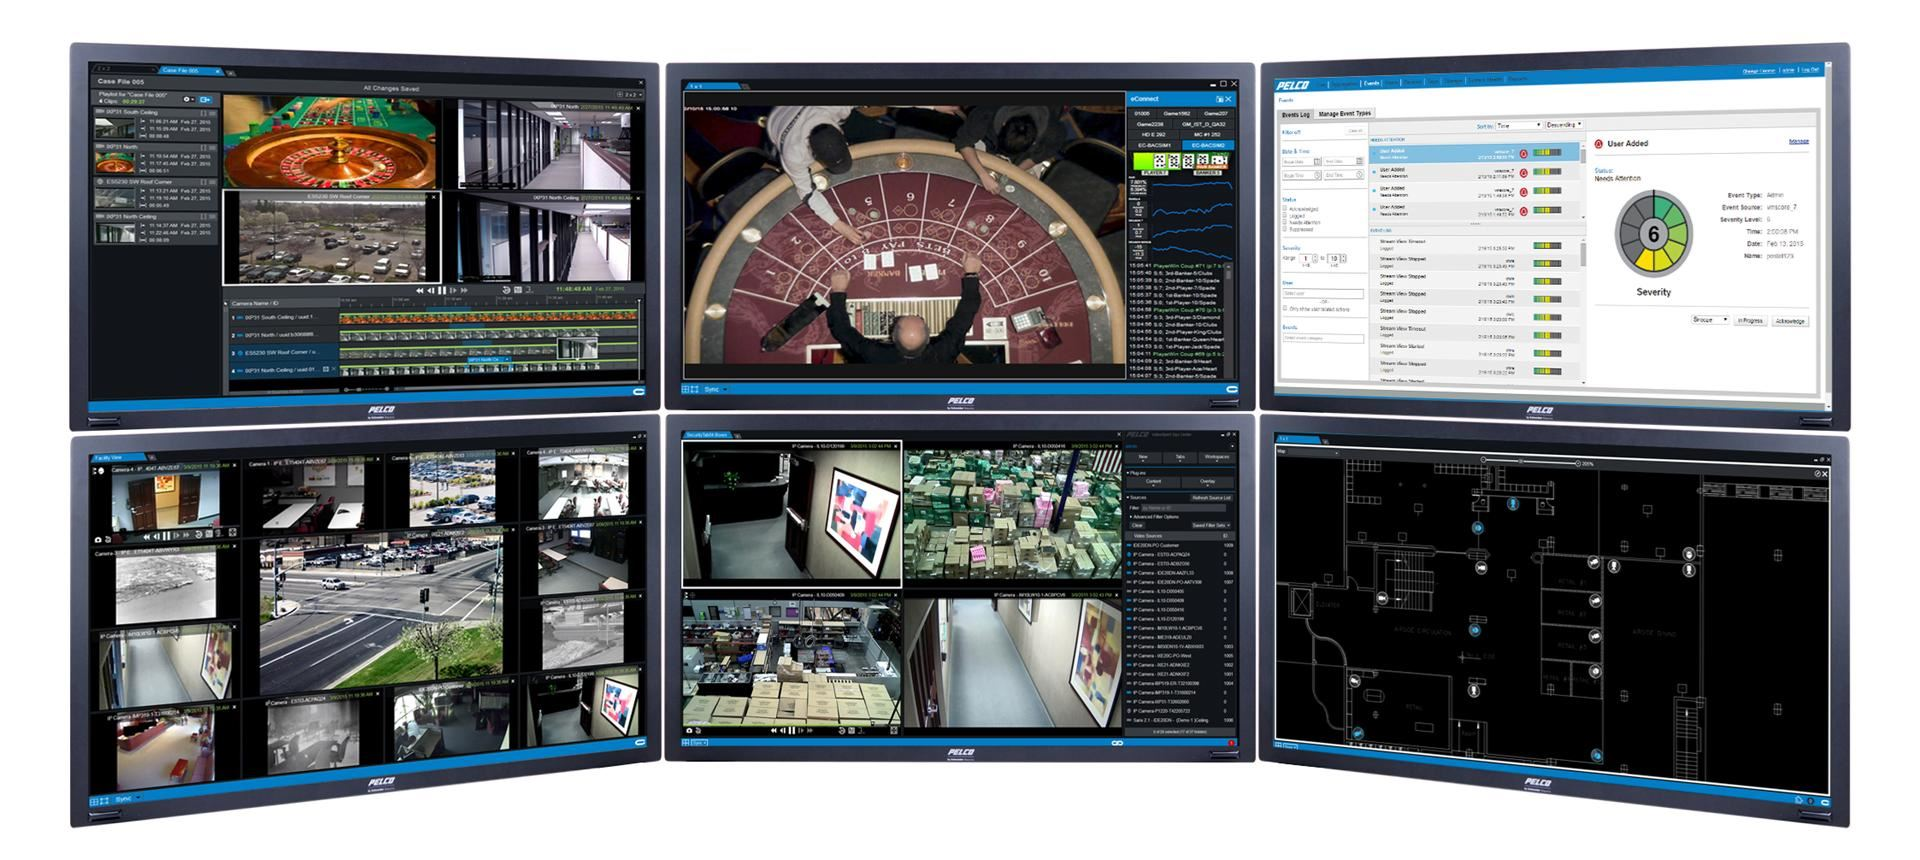 PELCO VideoXpert video management system